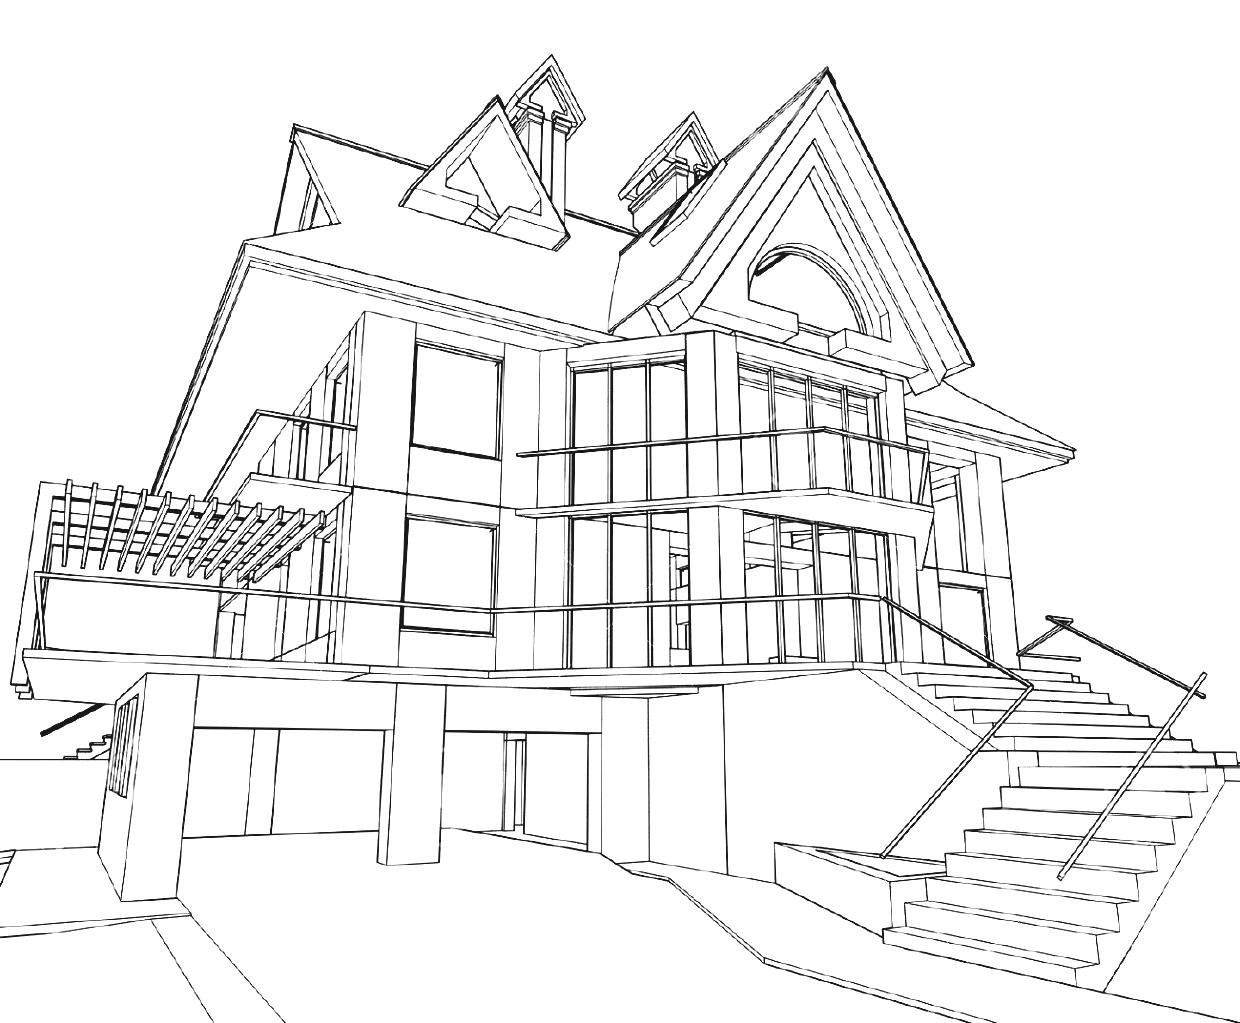 Architecture house drawing at free for for Home design drawing